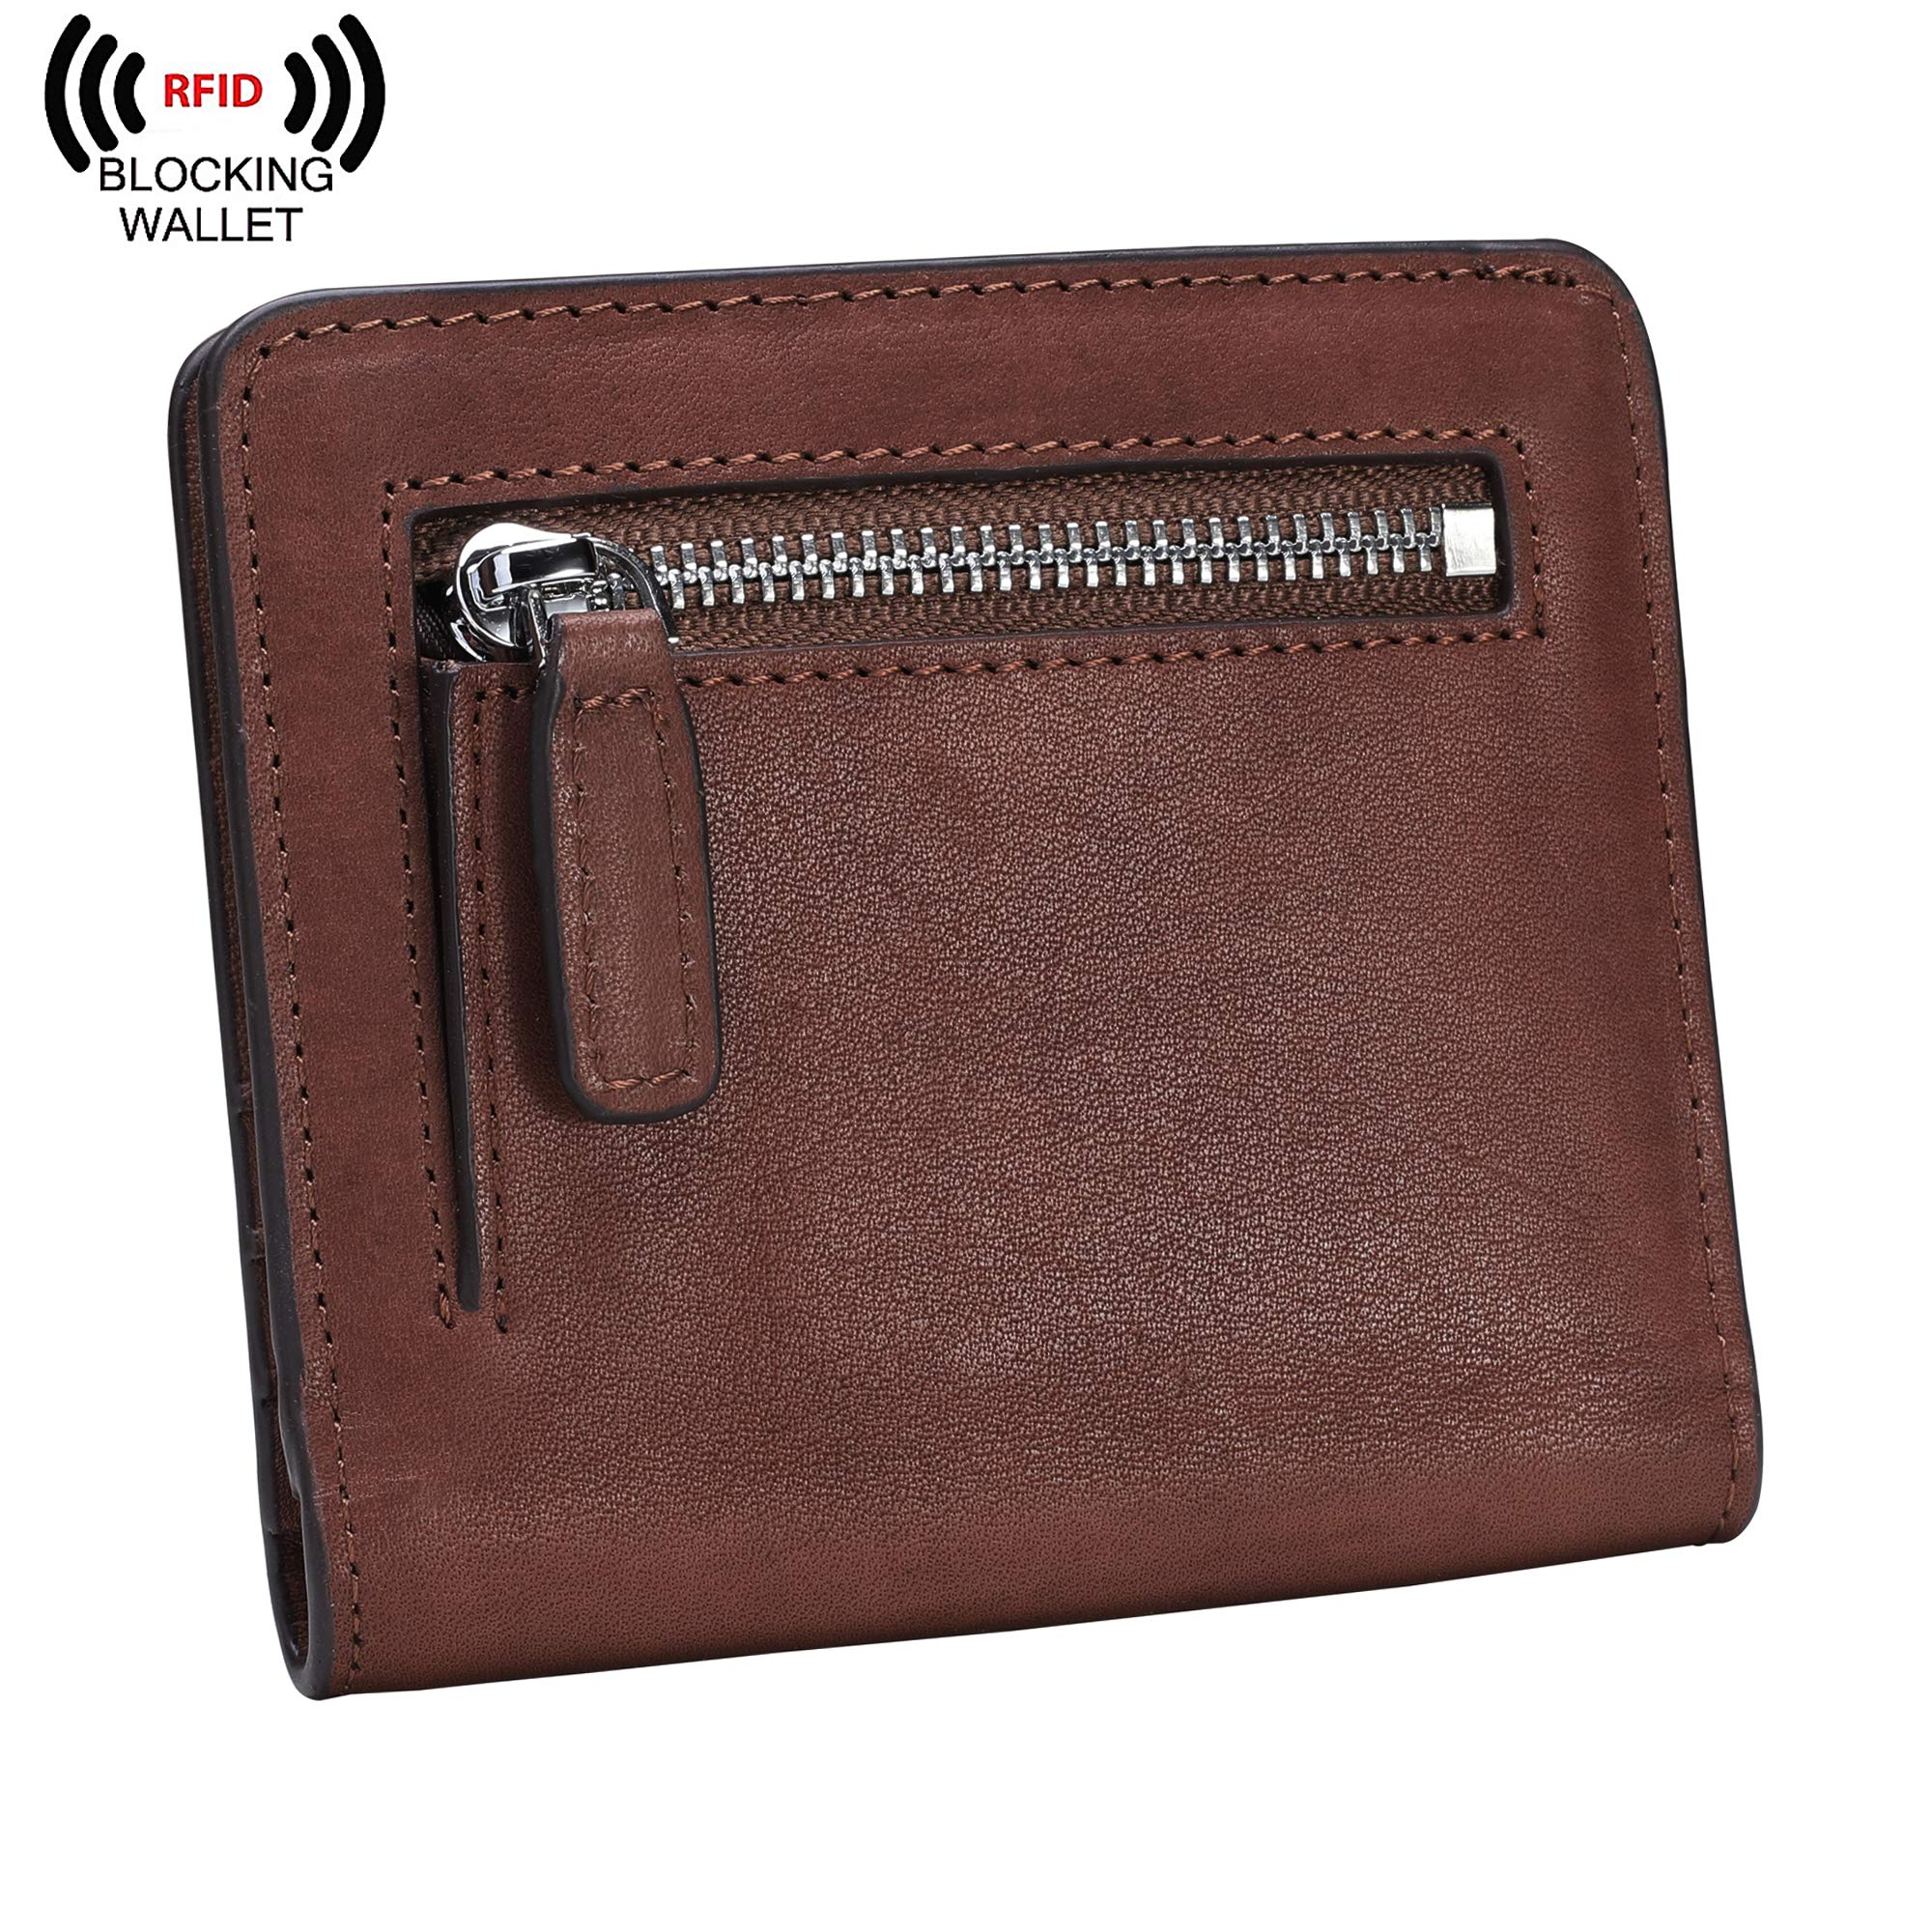 BIG SALE-AINIMOER Women's RFID Blocking Leather Small Compact Bifold Pocket Wallet Ladies Mini Purse with id Window (Vintage Brown) by AINIMOER (Image #2)